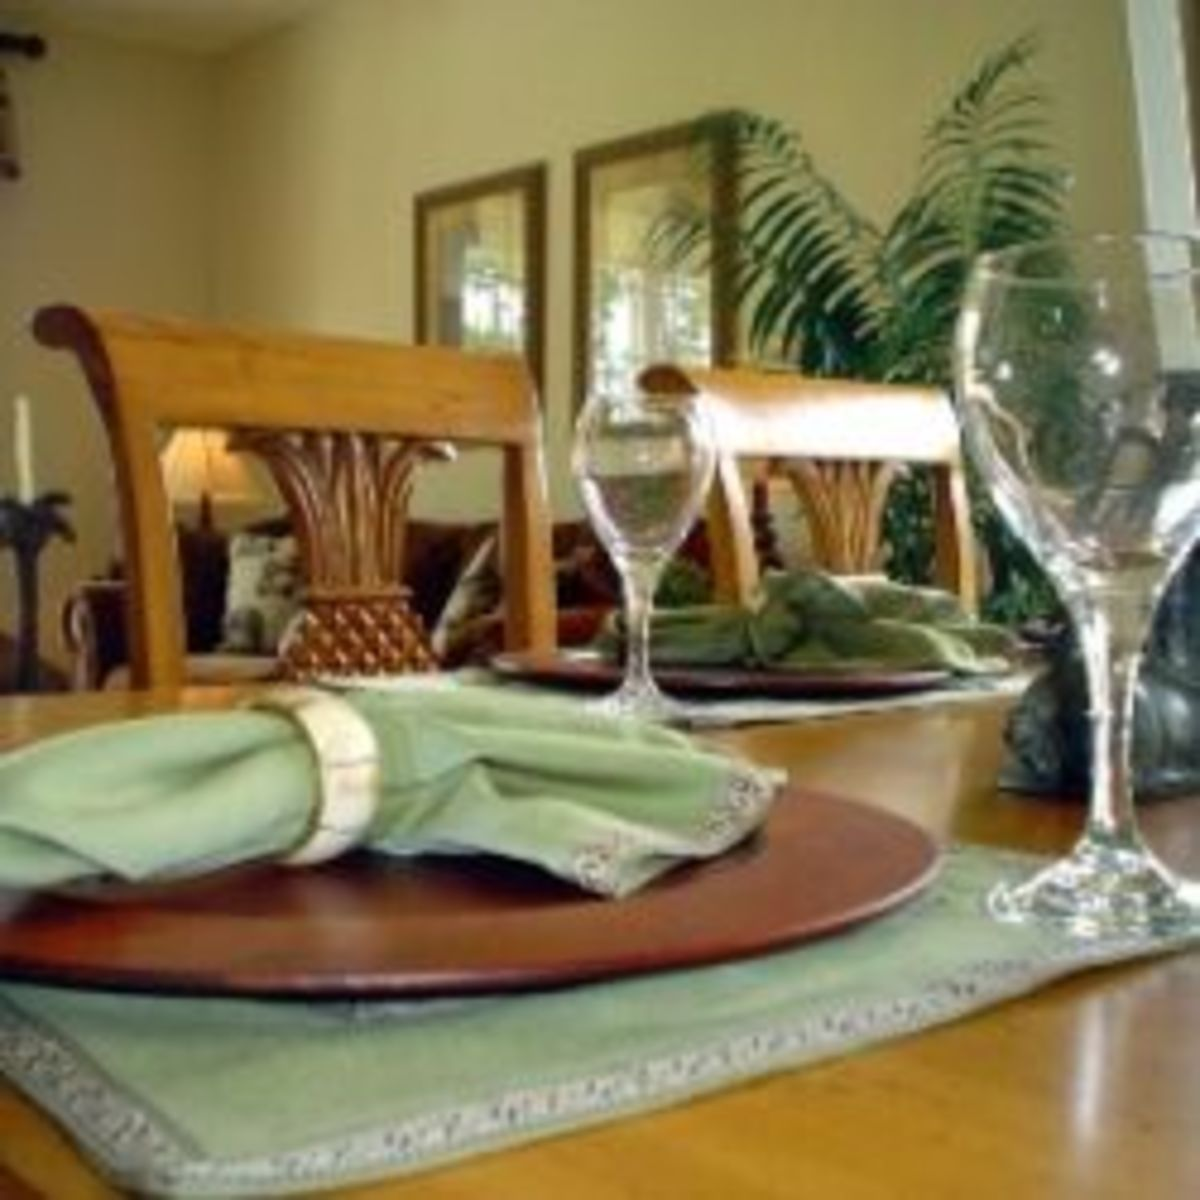 The formal look of polished wood, celadon green placemats, a gracious living mark this look as truly Southern but with a soft and easy look that came from those sweet Gulf breezes.